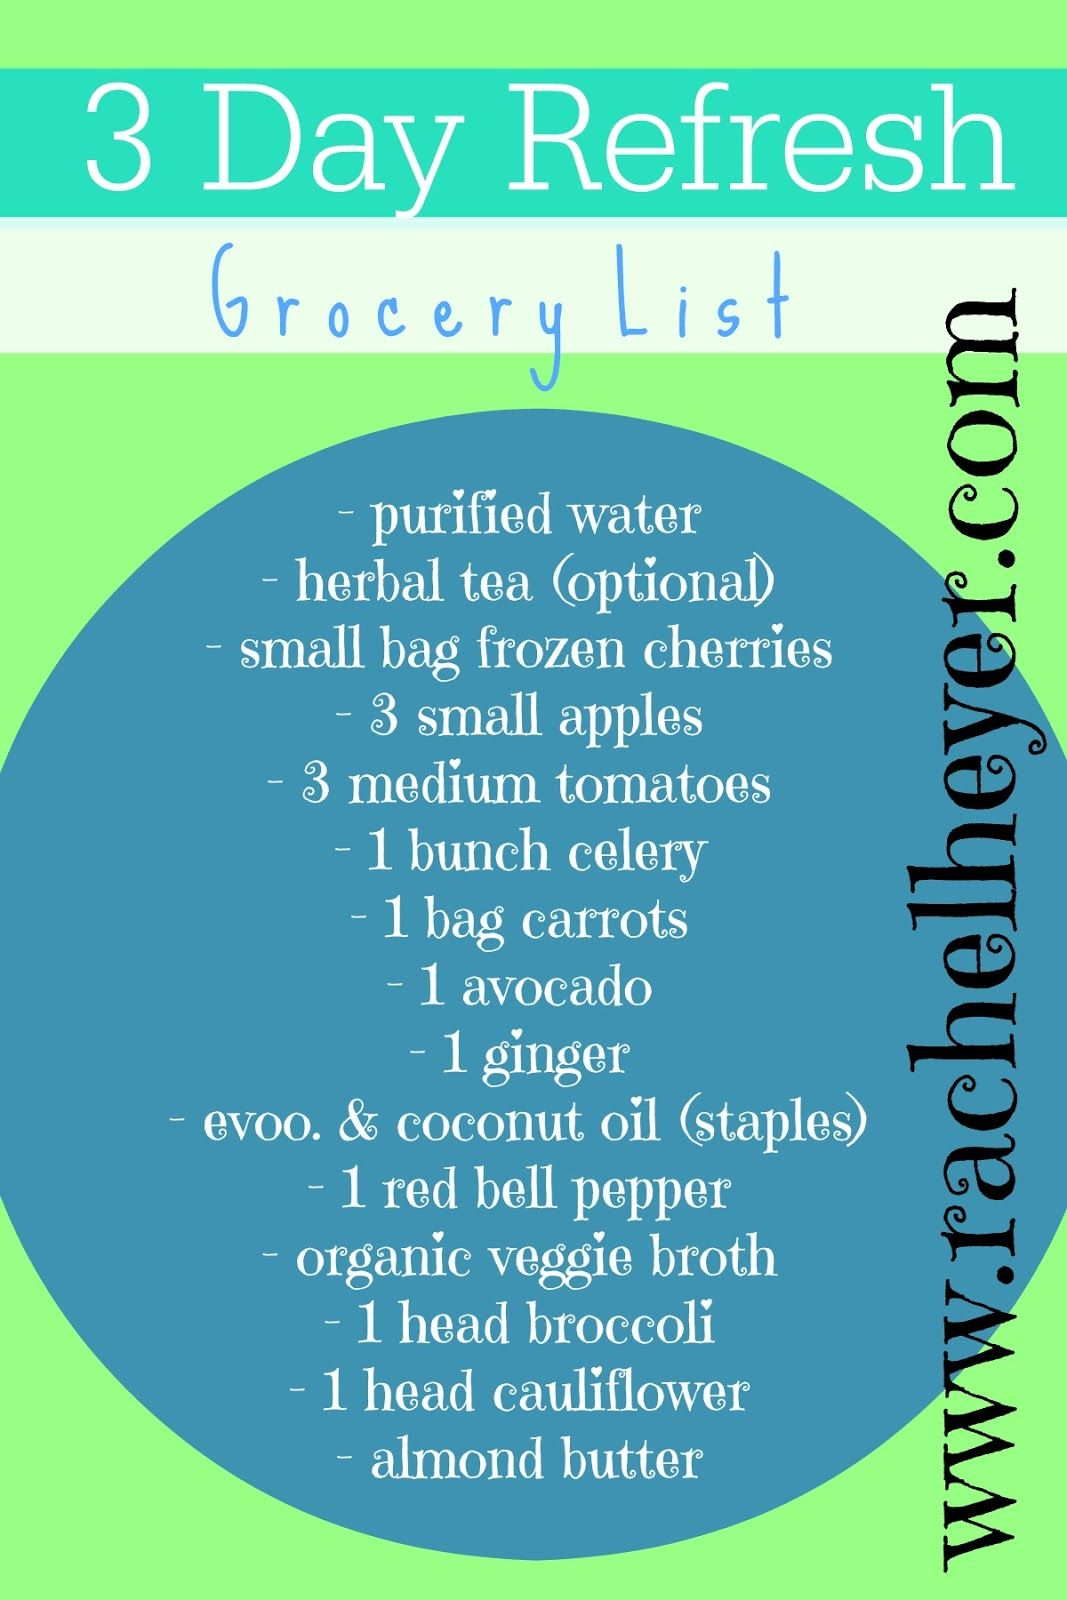 3 Day Refresh Grocery List